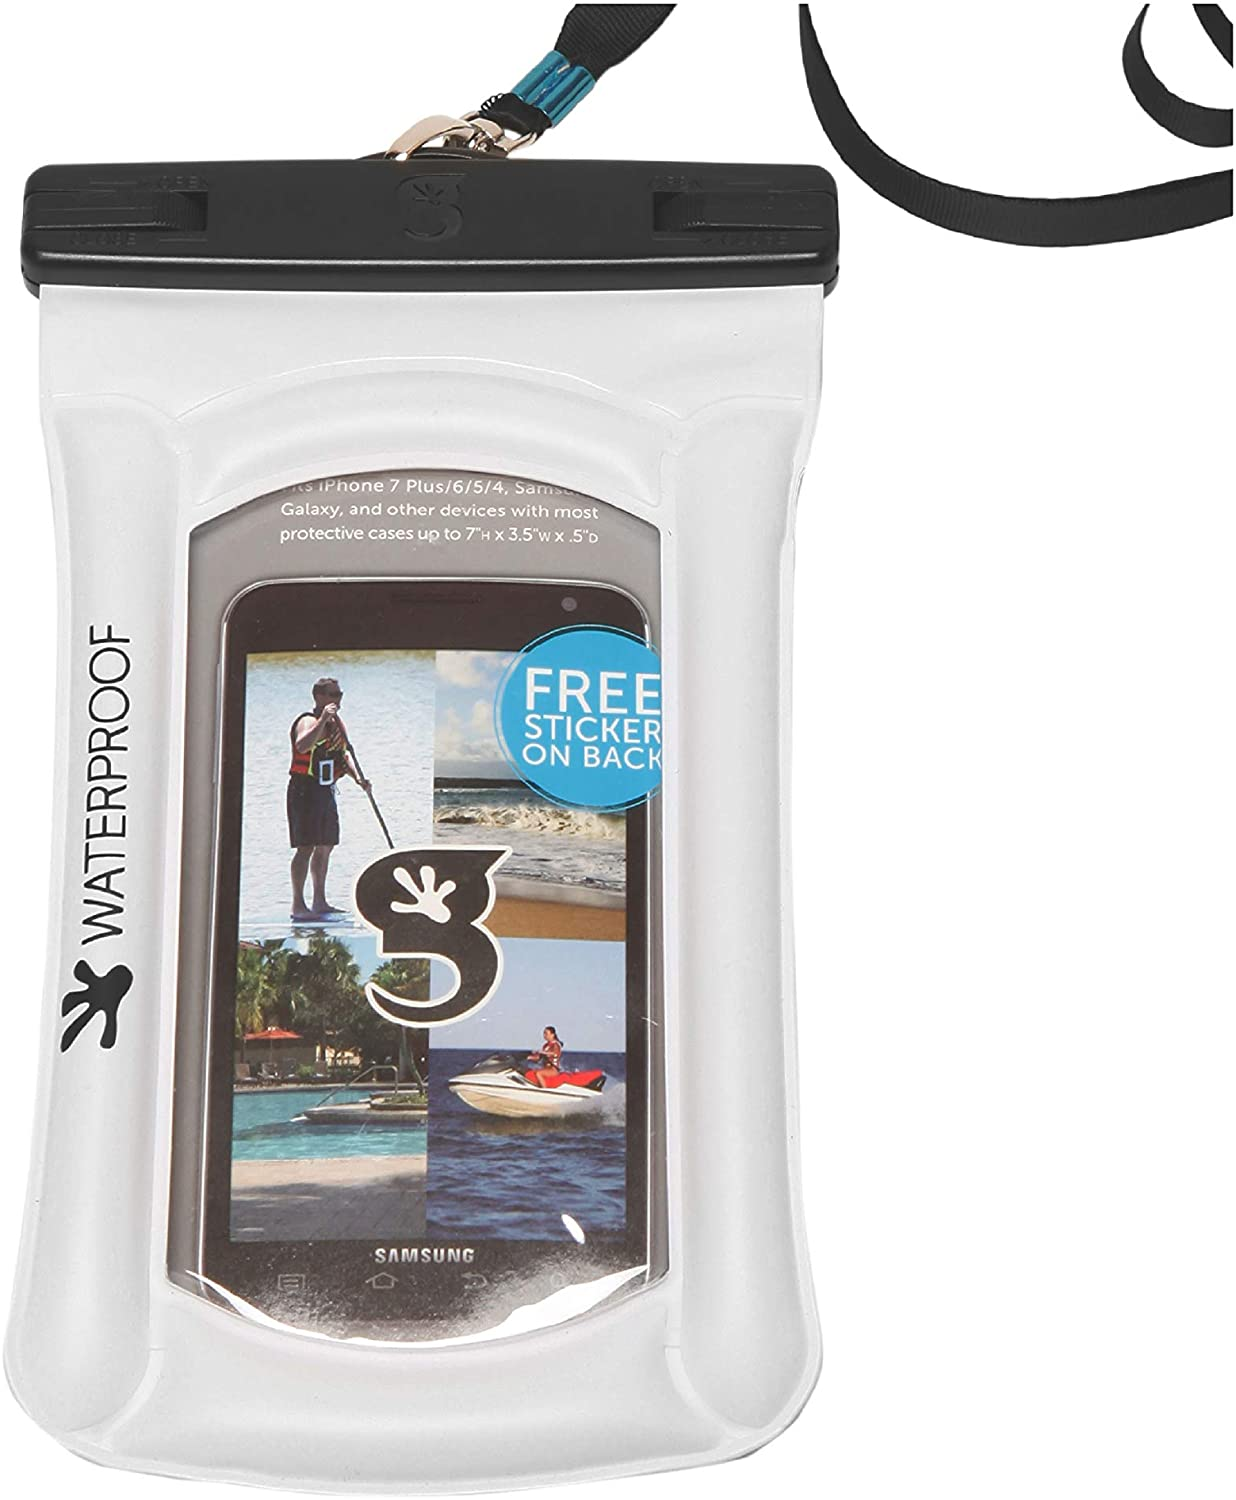 geckobrands Float Phone Dry Bag - Waterproof & Floating Phone Pouch – Fits Most iPhone and Samsung Galaxy Models, Available in 5 Colors